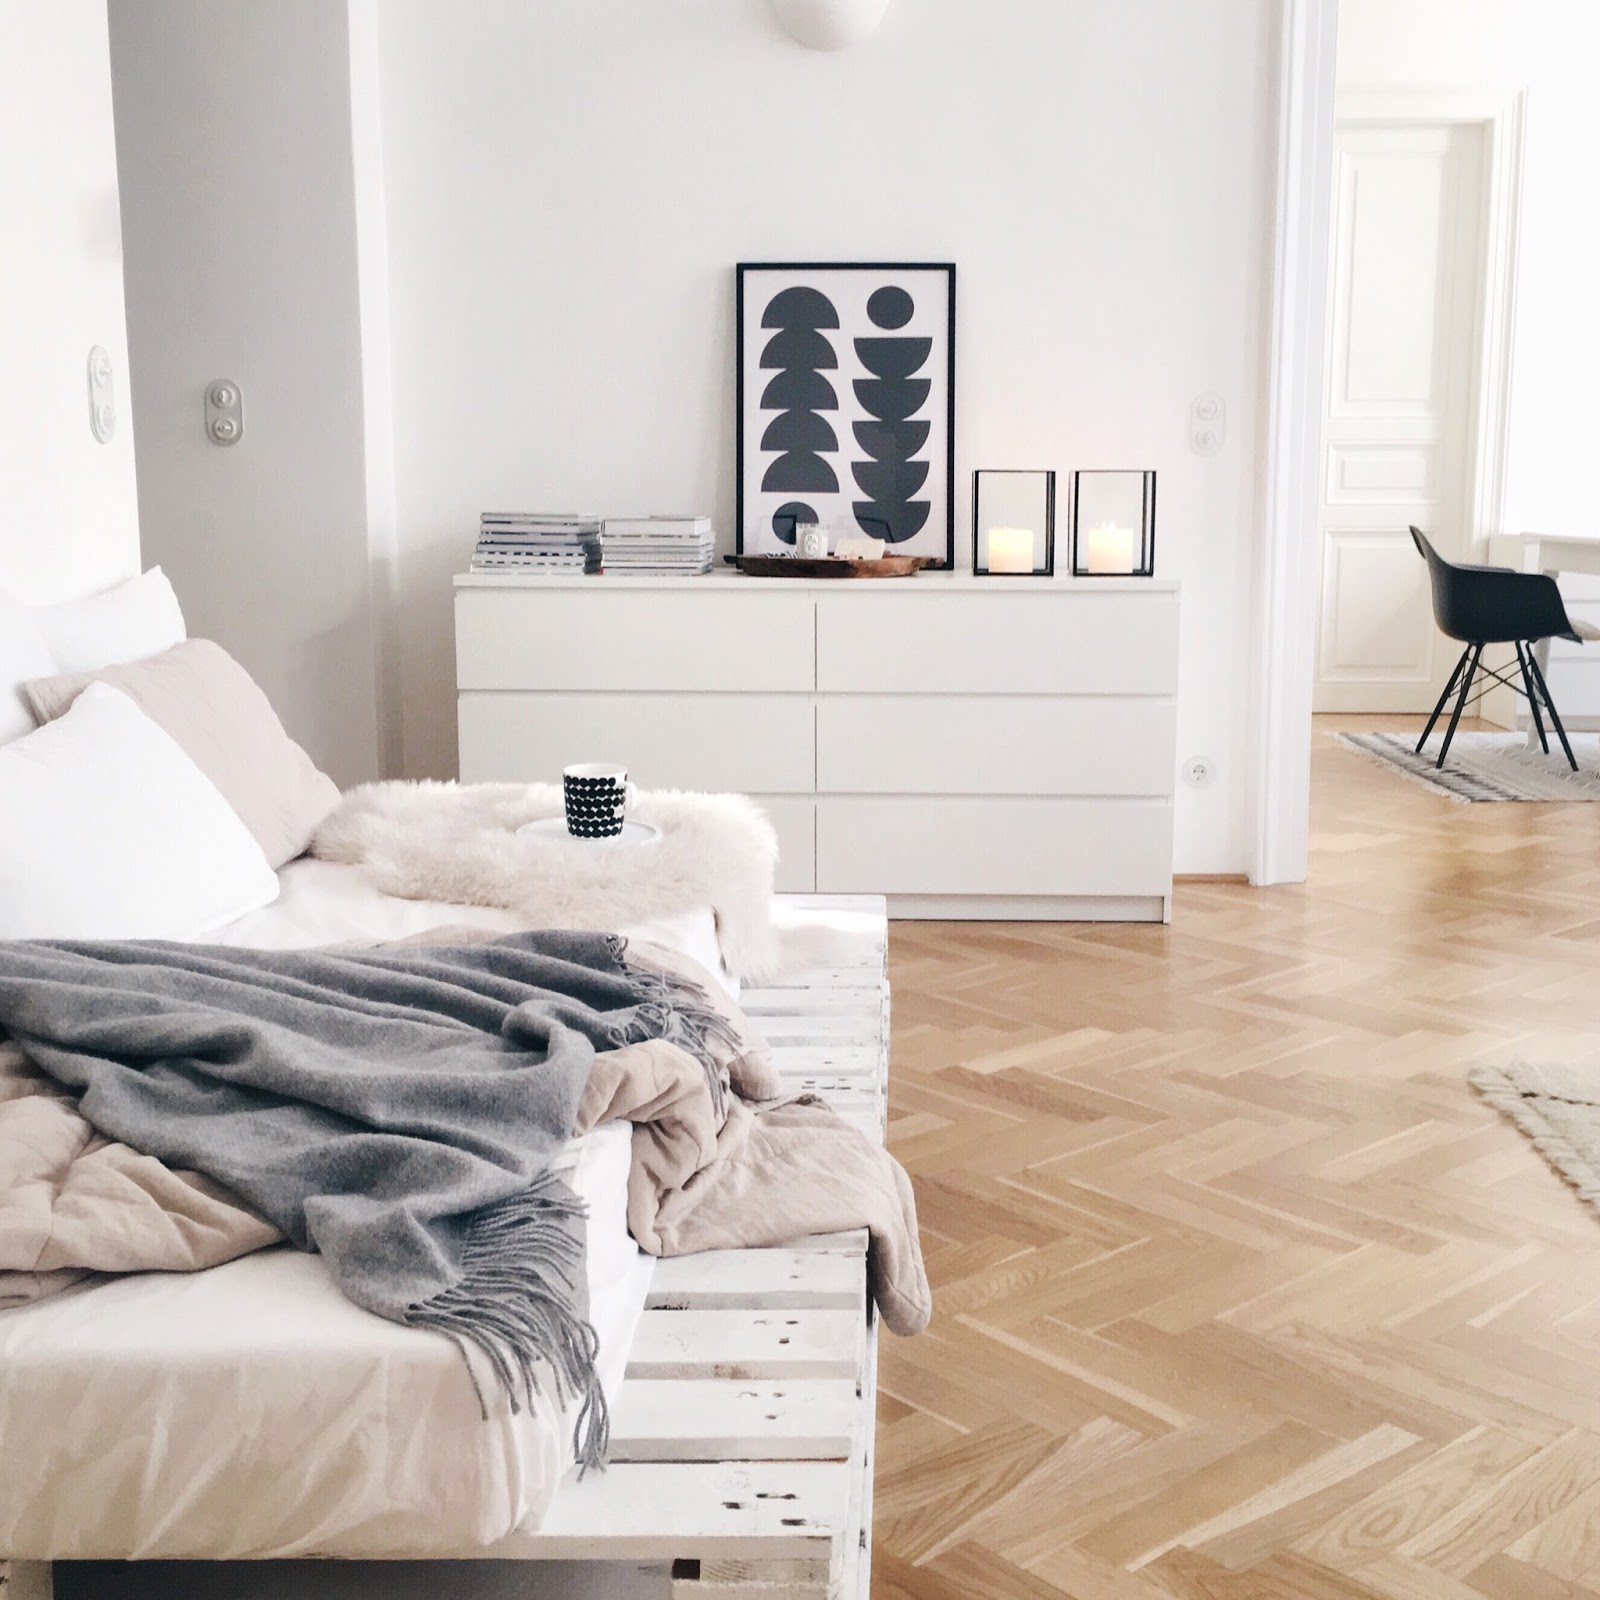 wohn tag mit svenja aus wien wohnprojekt wohnblog f r interior diy und lifestyle. Black Bedroom Furniture Sets. Home Design Ideas